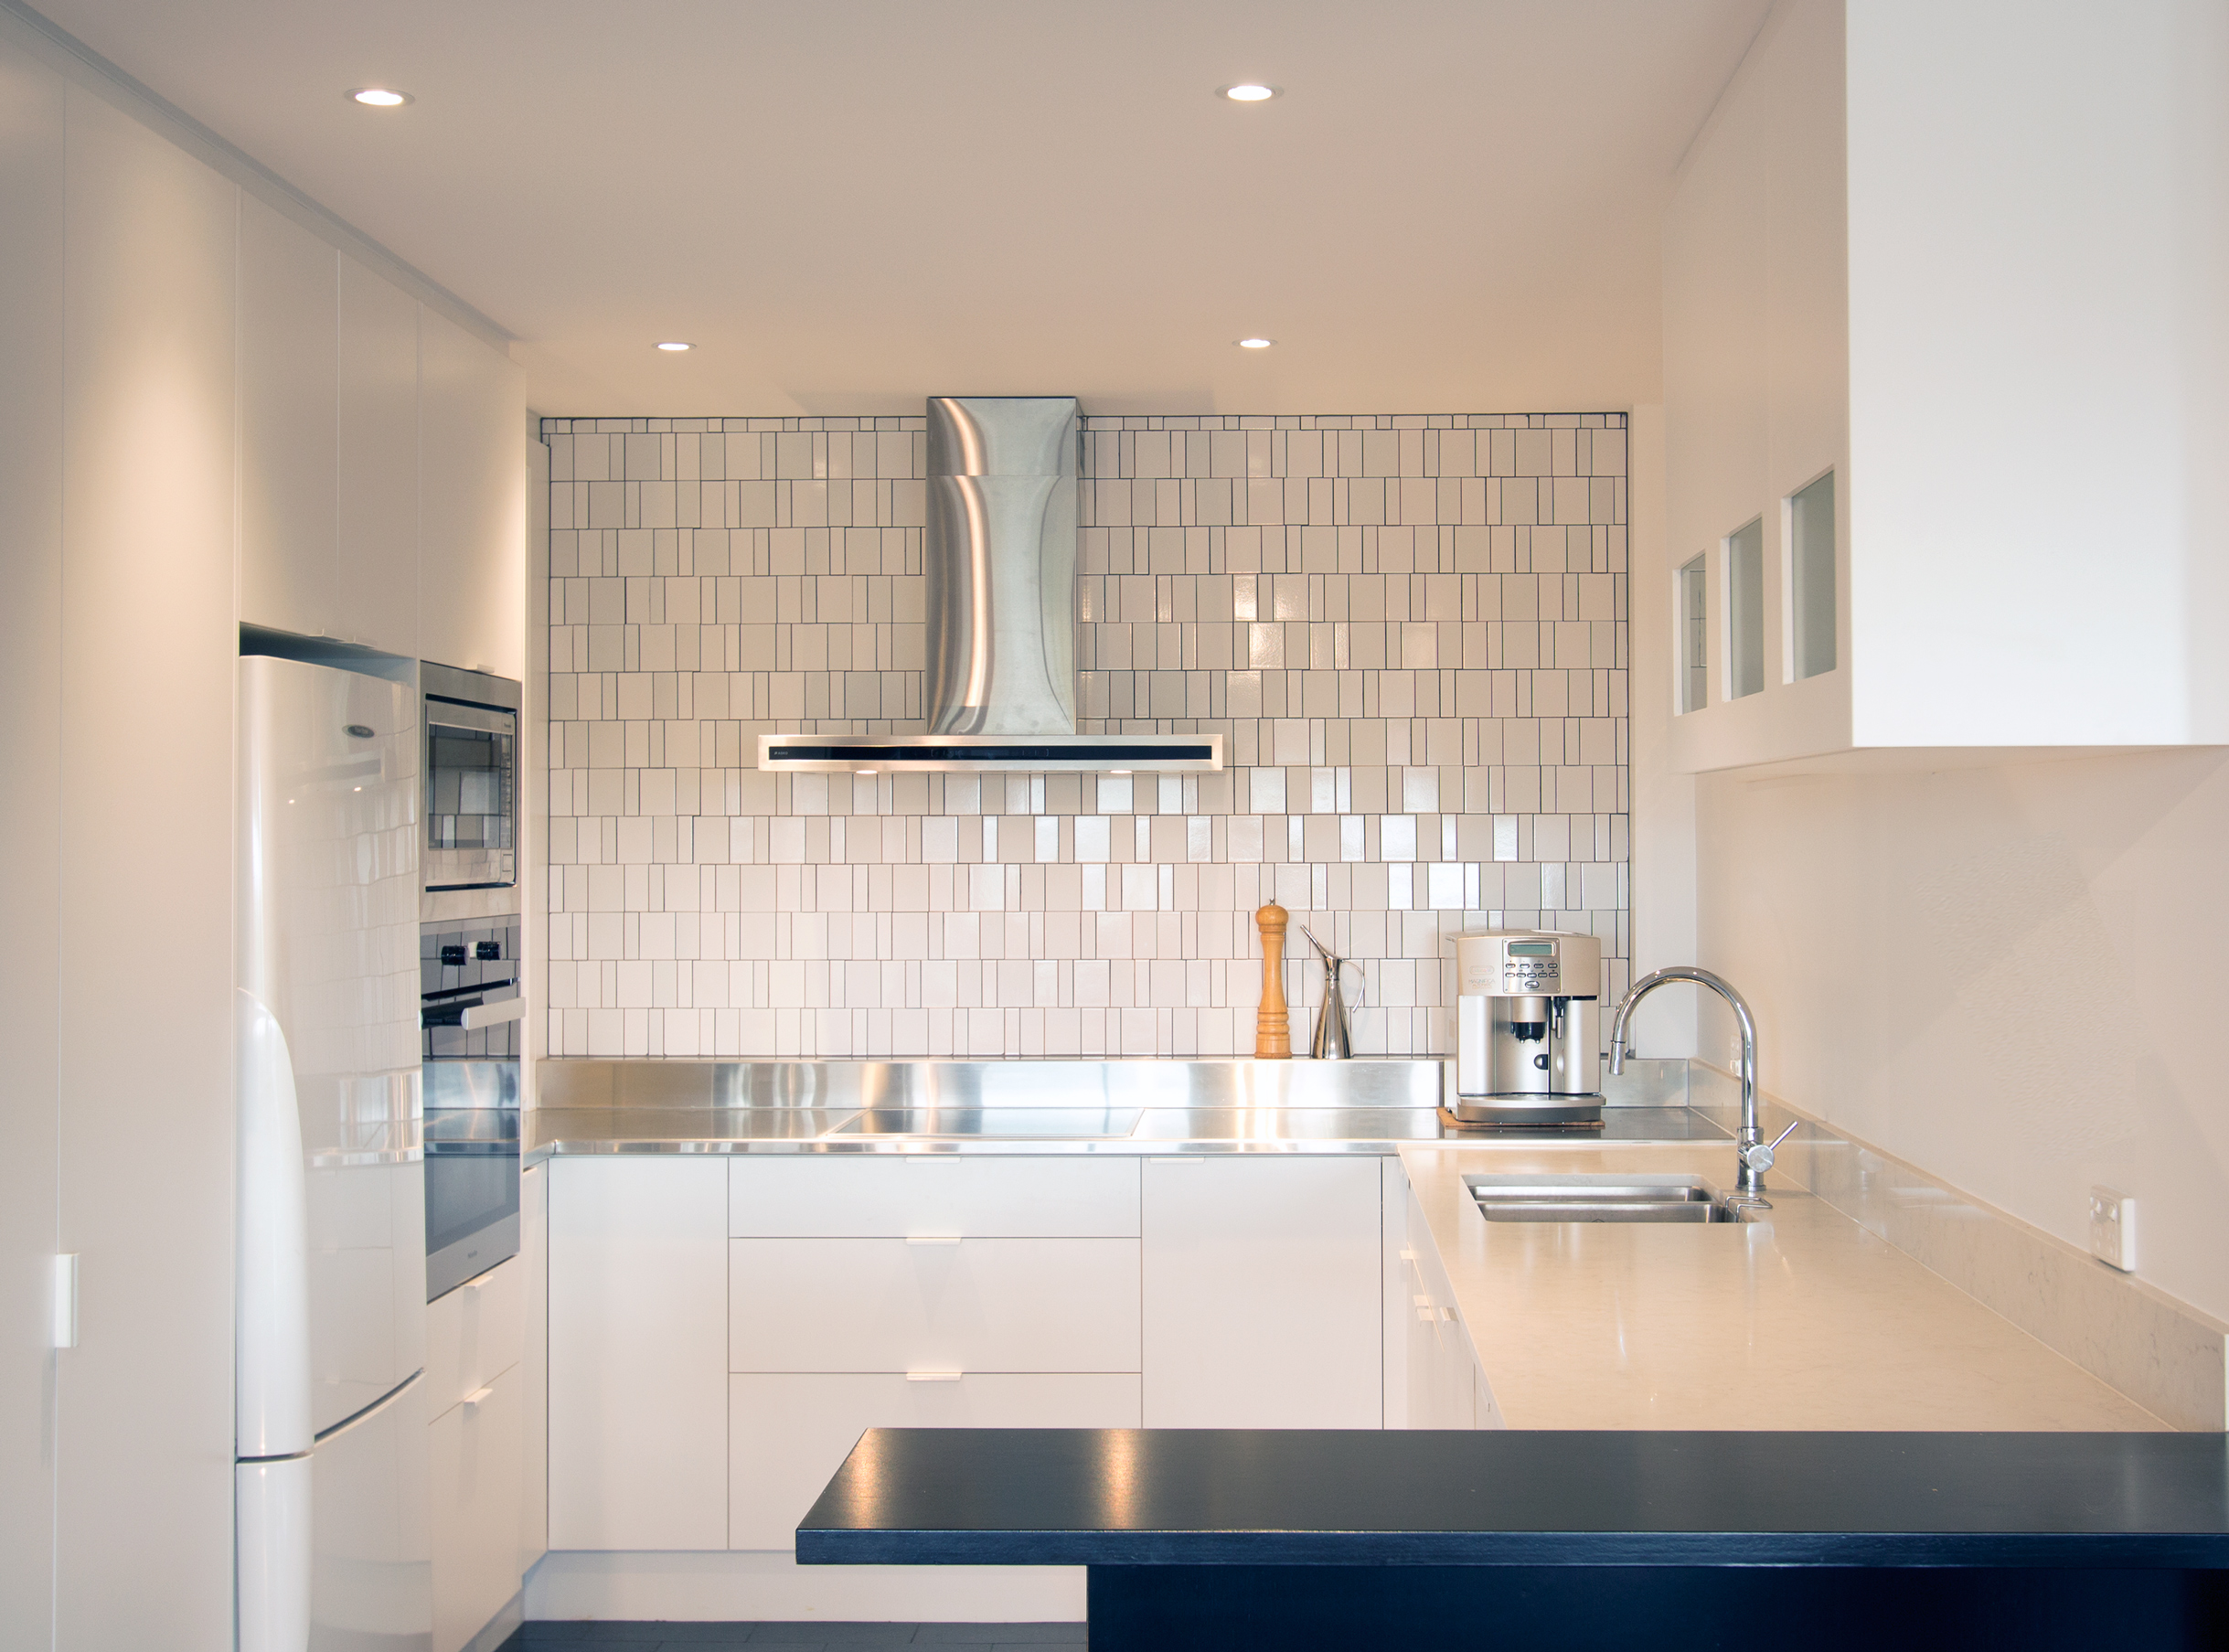 Apartment renovation Brisbane, DbyD custom kitchens, stainless steel bench top